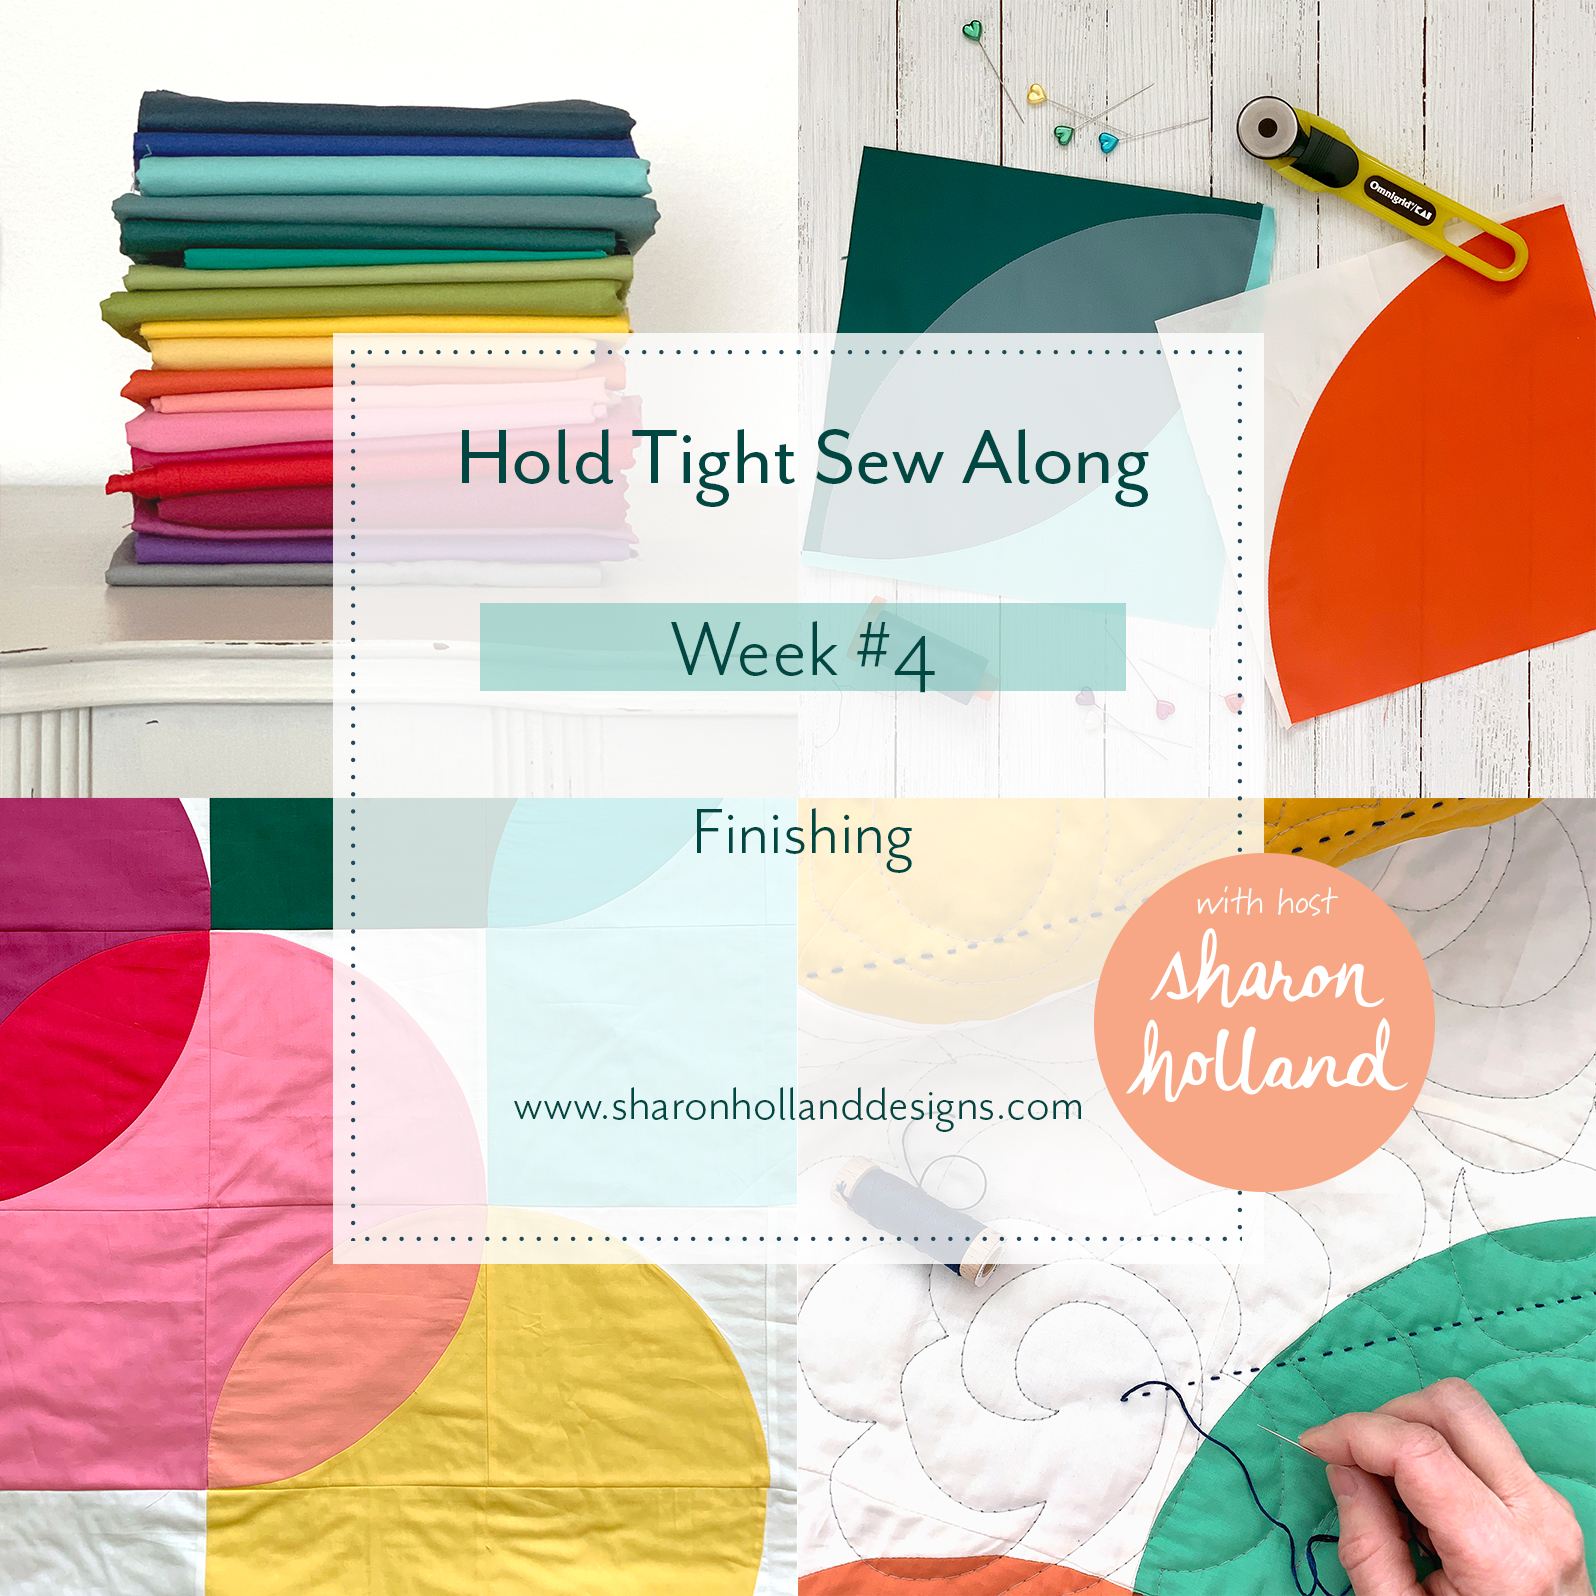 Hold Tight Sew Along Week 4.jpg